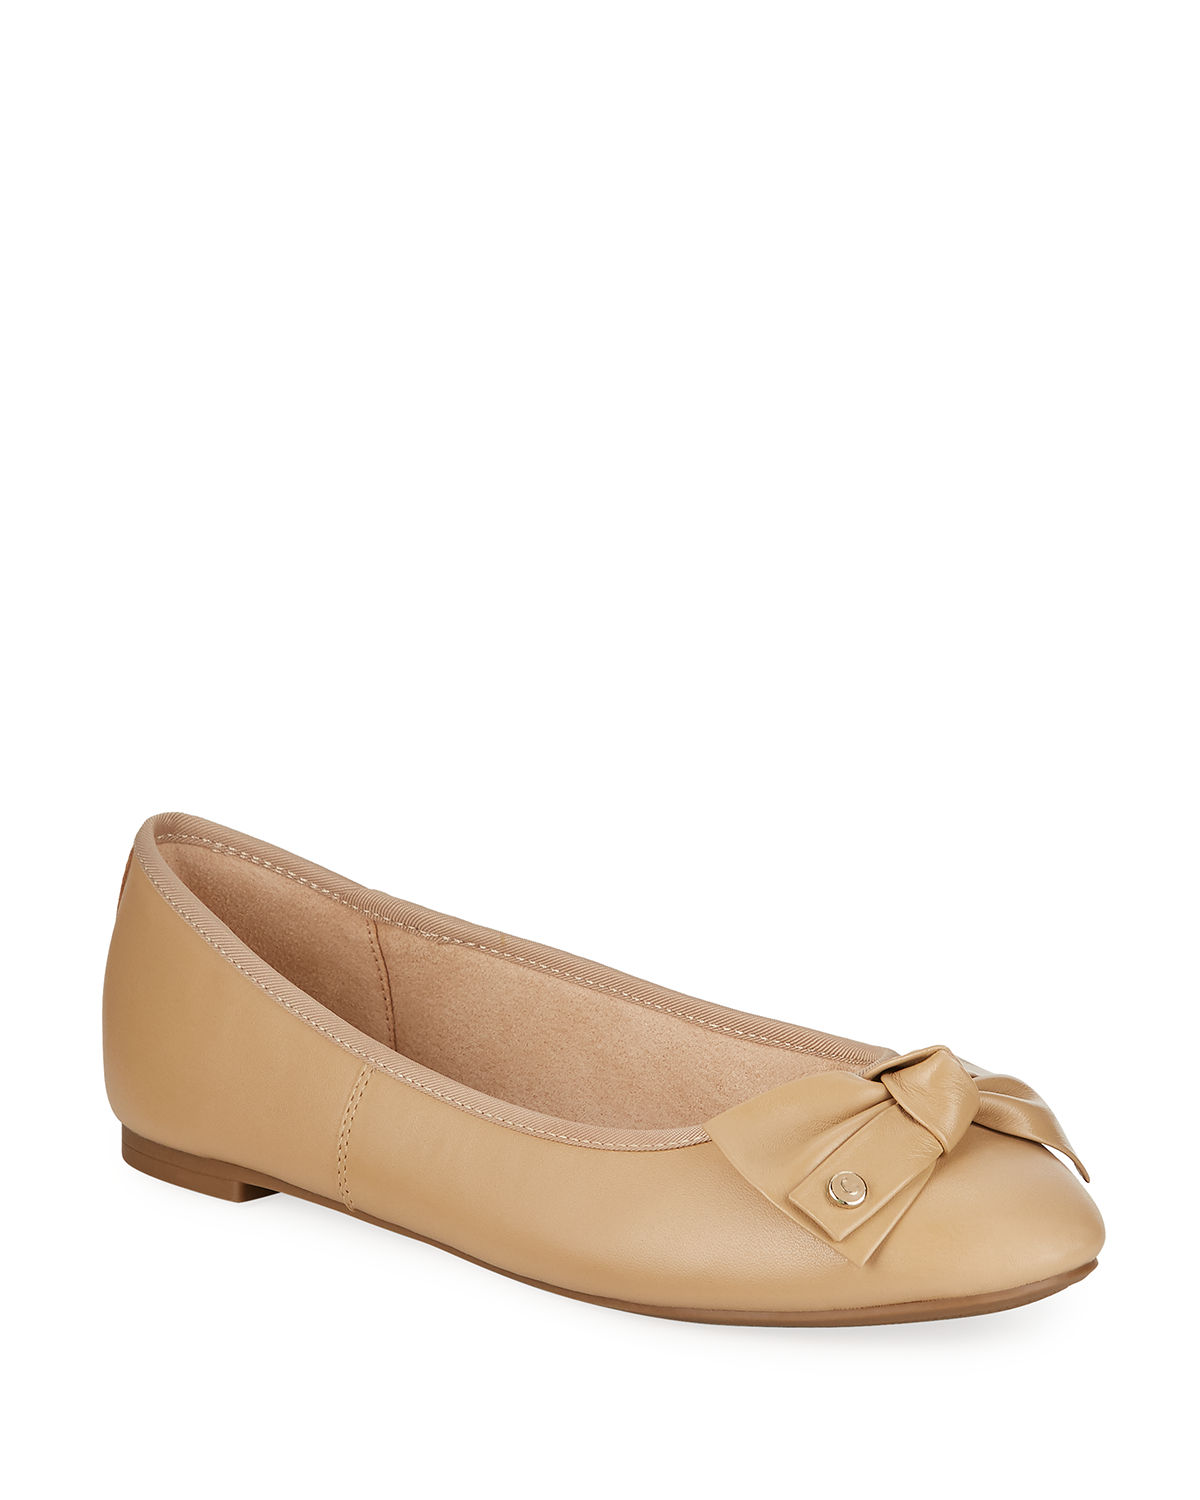 307e613cc Circus By Sam Edelman Connie Leather Bow Flats In Classic Nude ...